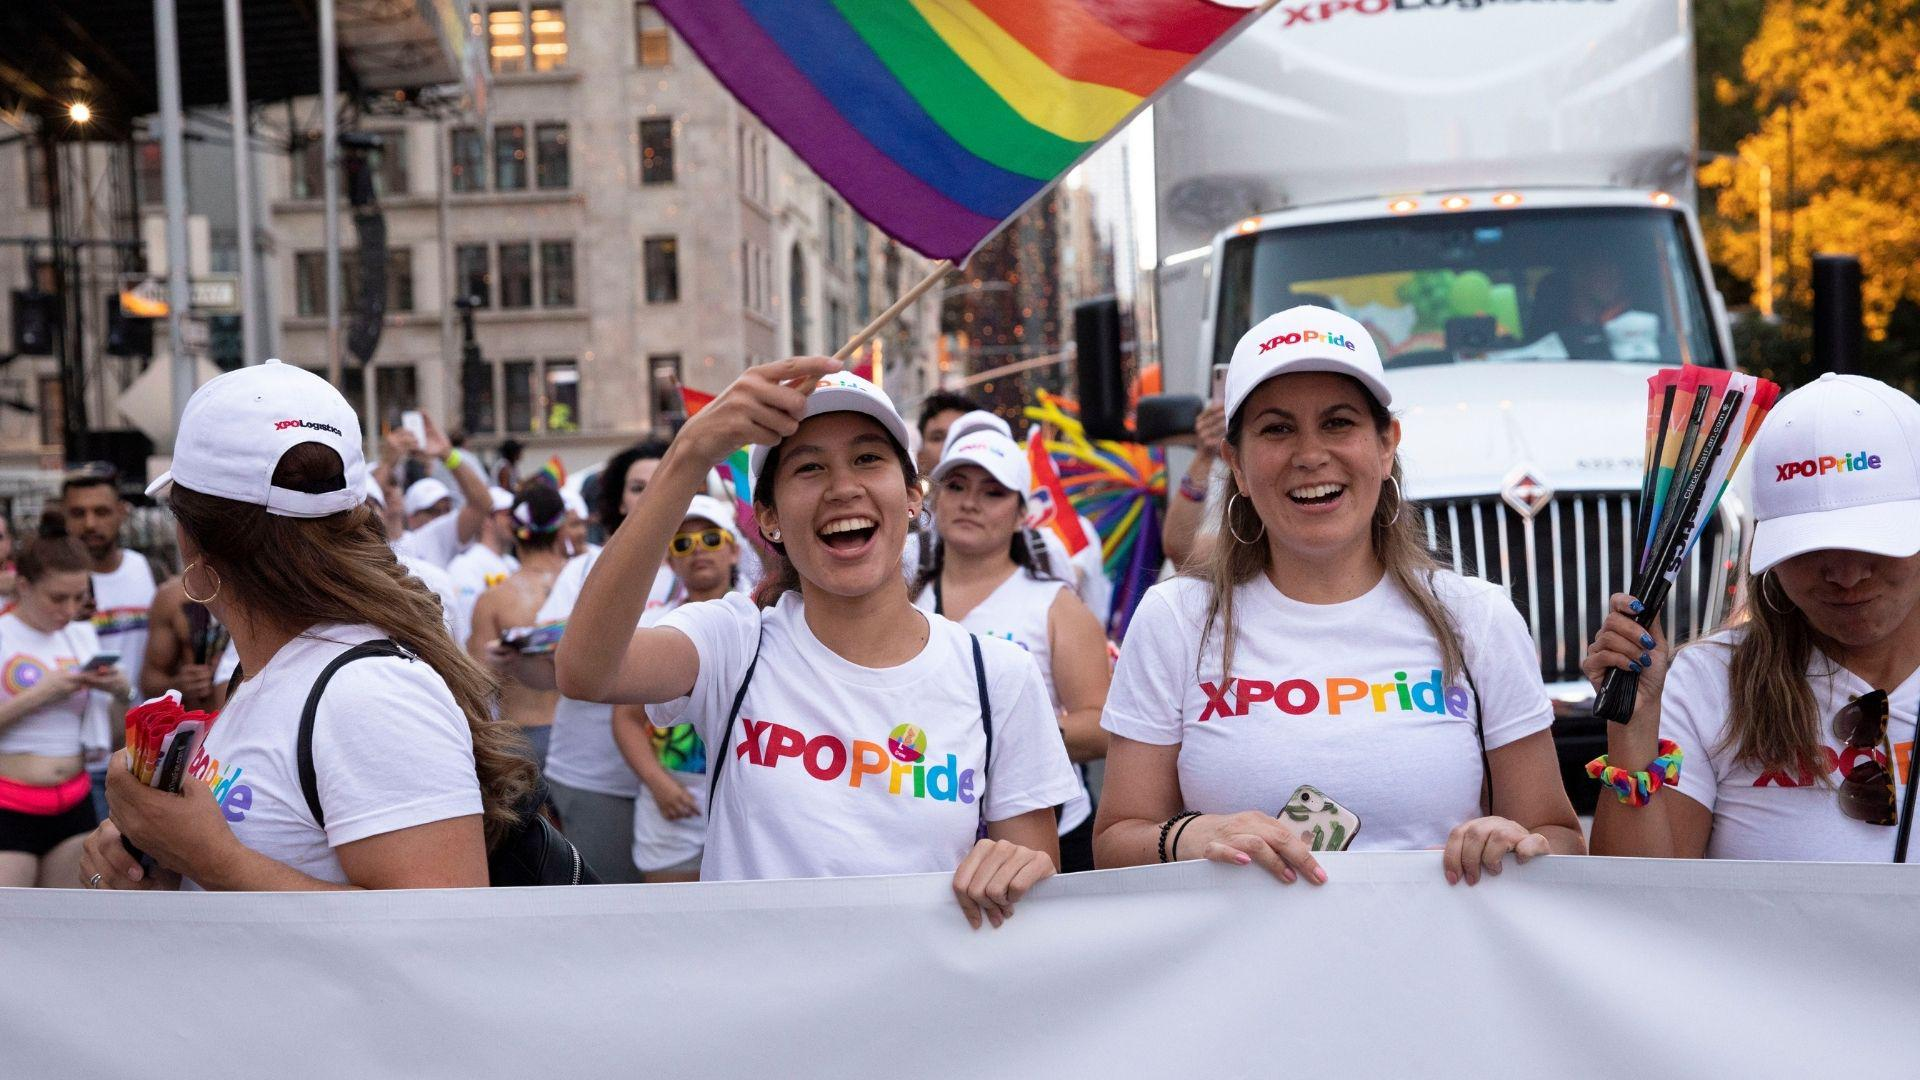 XPO employees at NYC Pride